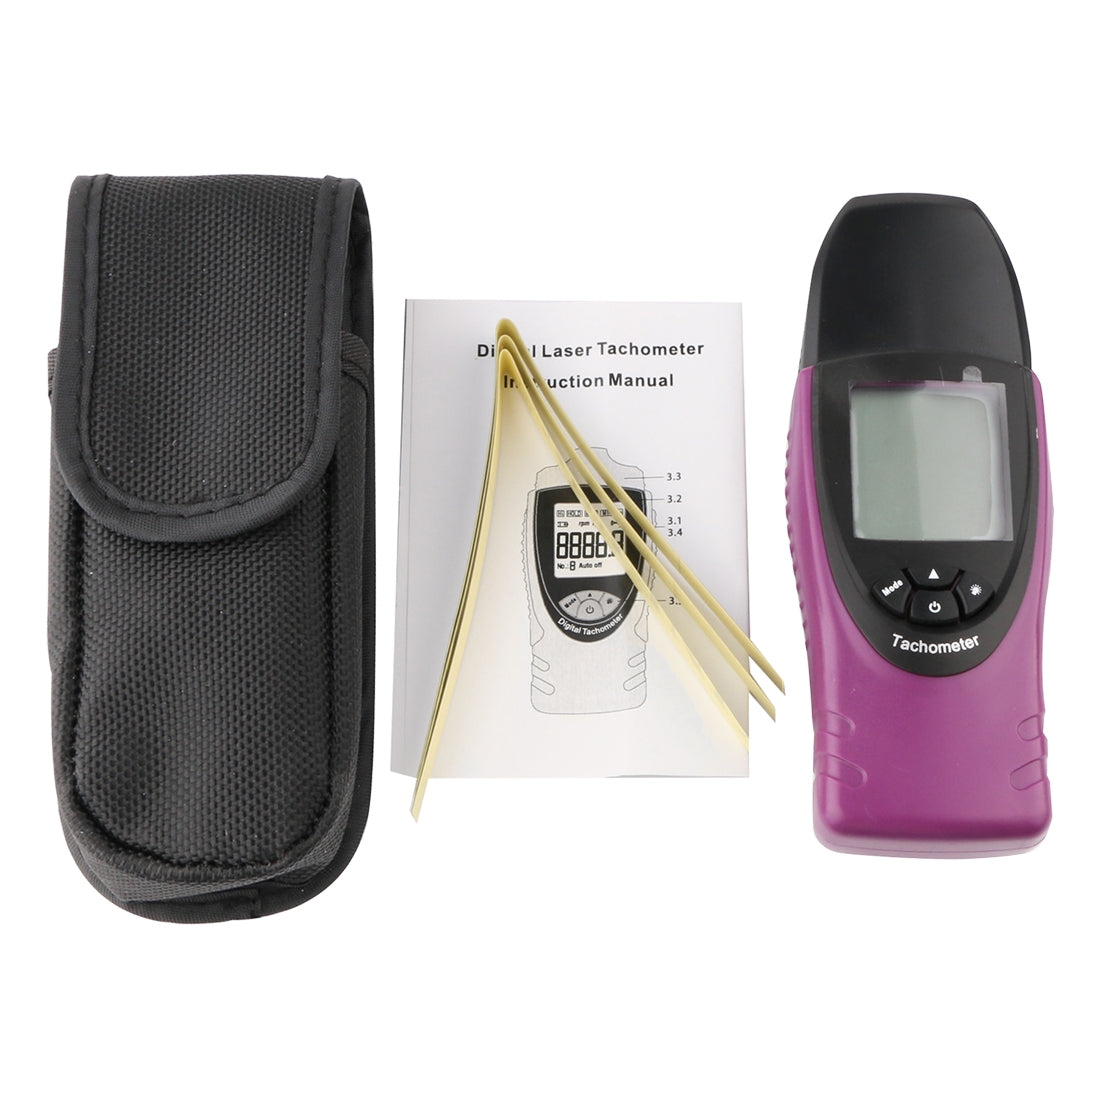 ST8030 Mini Digital Photo Laser Digital Tachometer Non Contact High Accuracy MPU LCD Display(Purple)